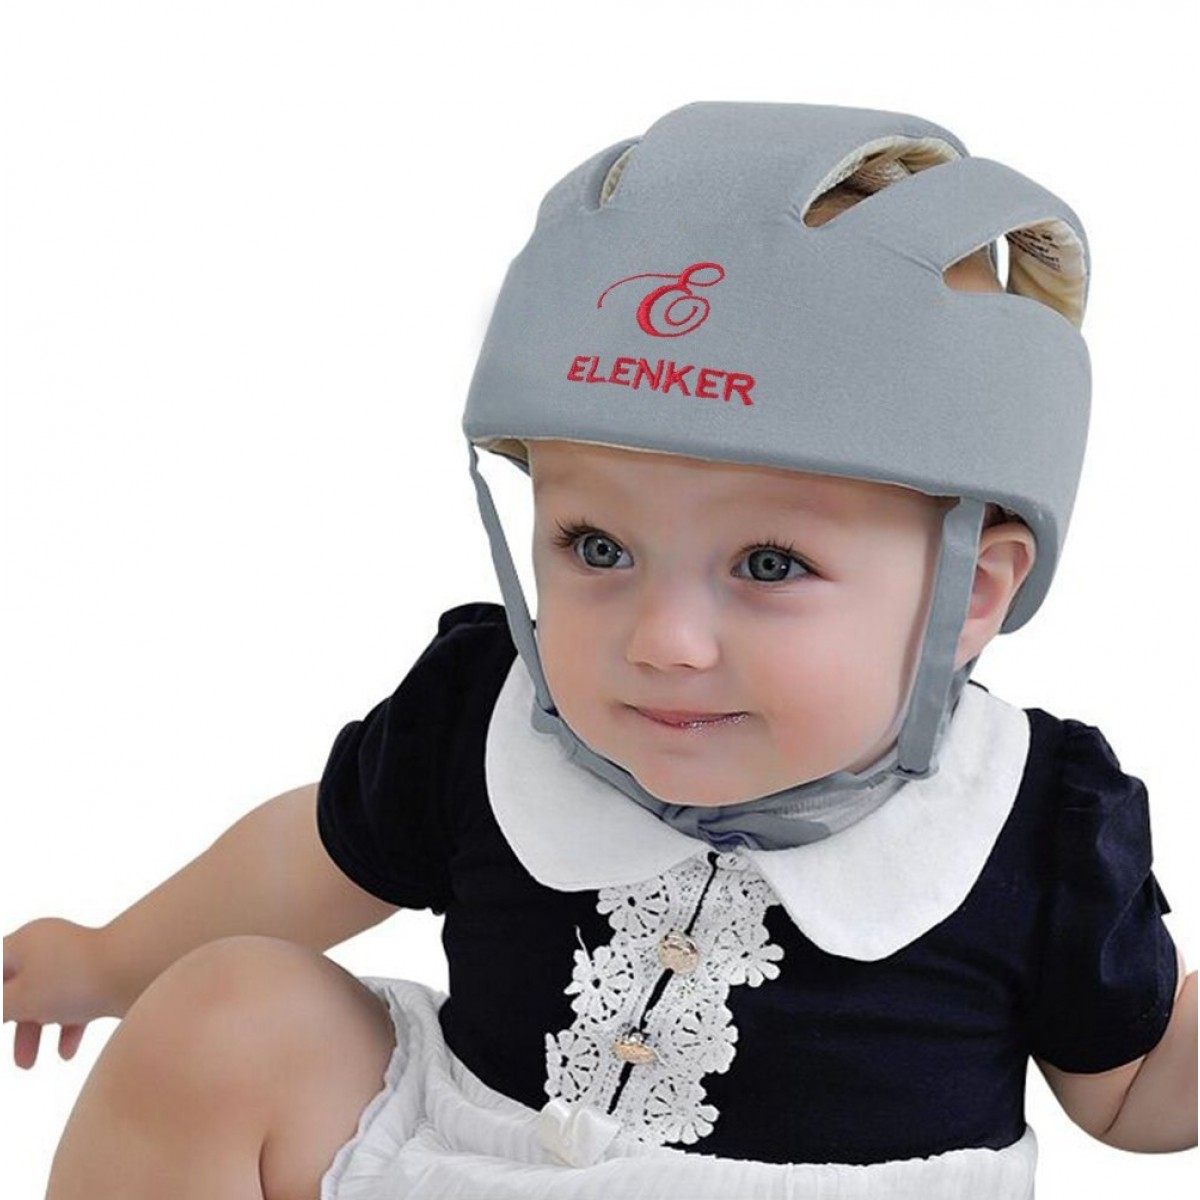 Baby Children Infant Adjustable Safety Helmet Headguard Protective Harnesses Cap